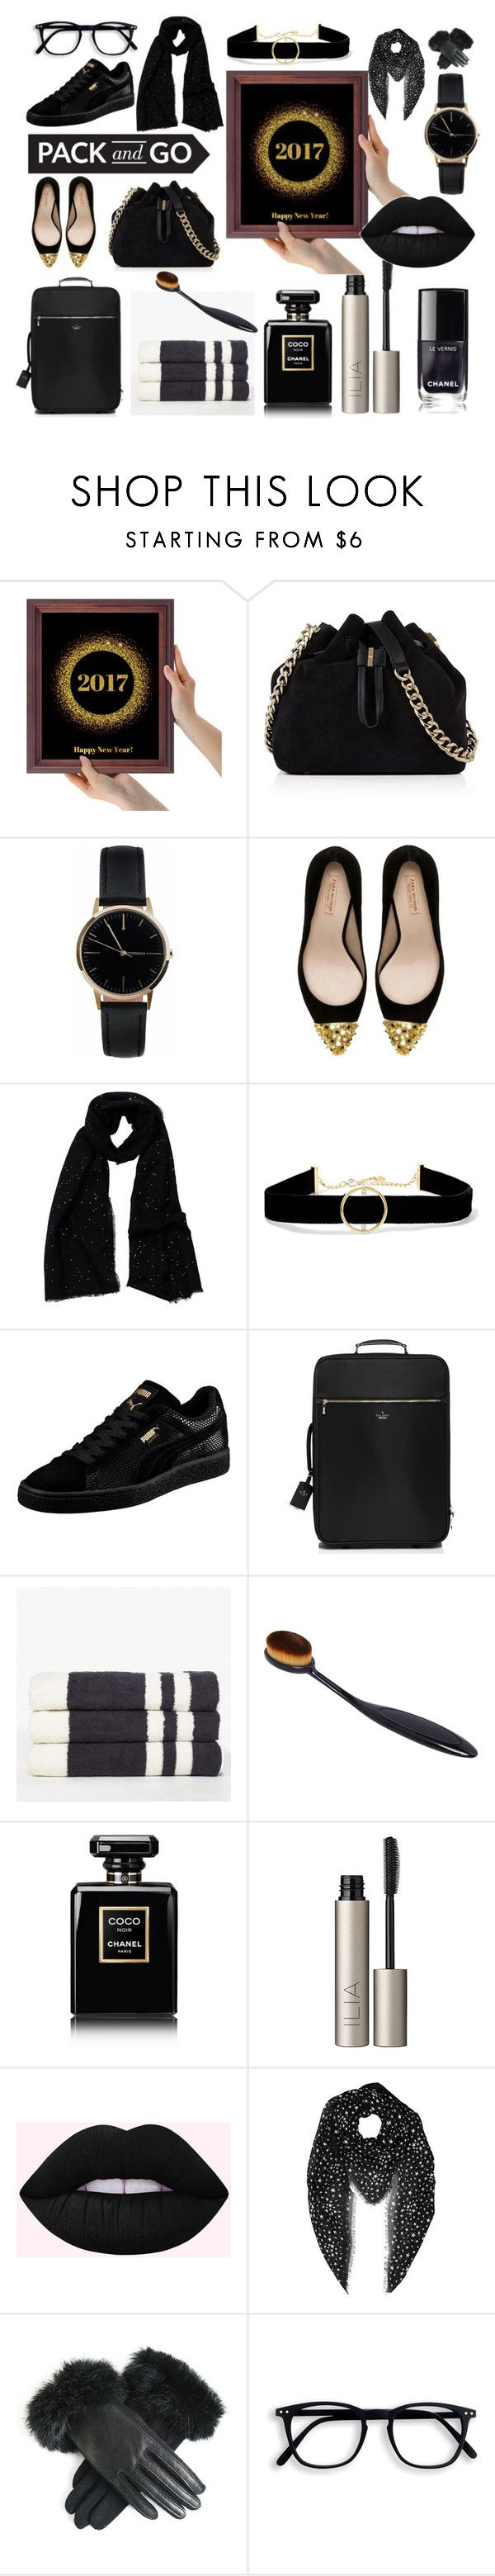 """""""Pack and go"""" by oldcastlechrista ❤ liked on Polyvore featuring Karen Millen, Freedom To Exist, Zara, Tilo, Anissa Kermiche, Puma, Kate Spade, James Perse, Chanel and Ilia"""